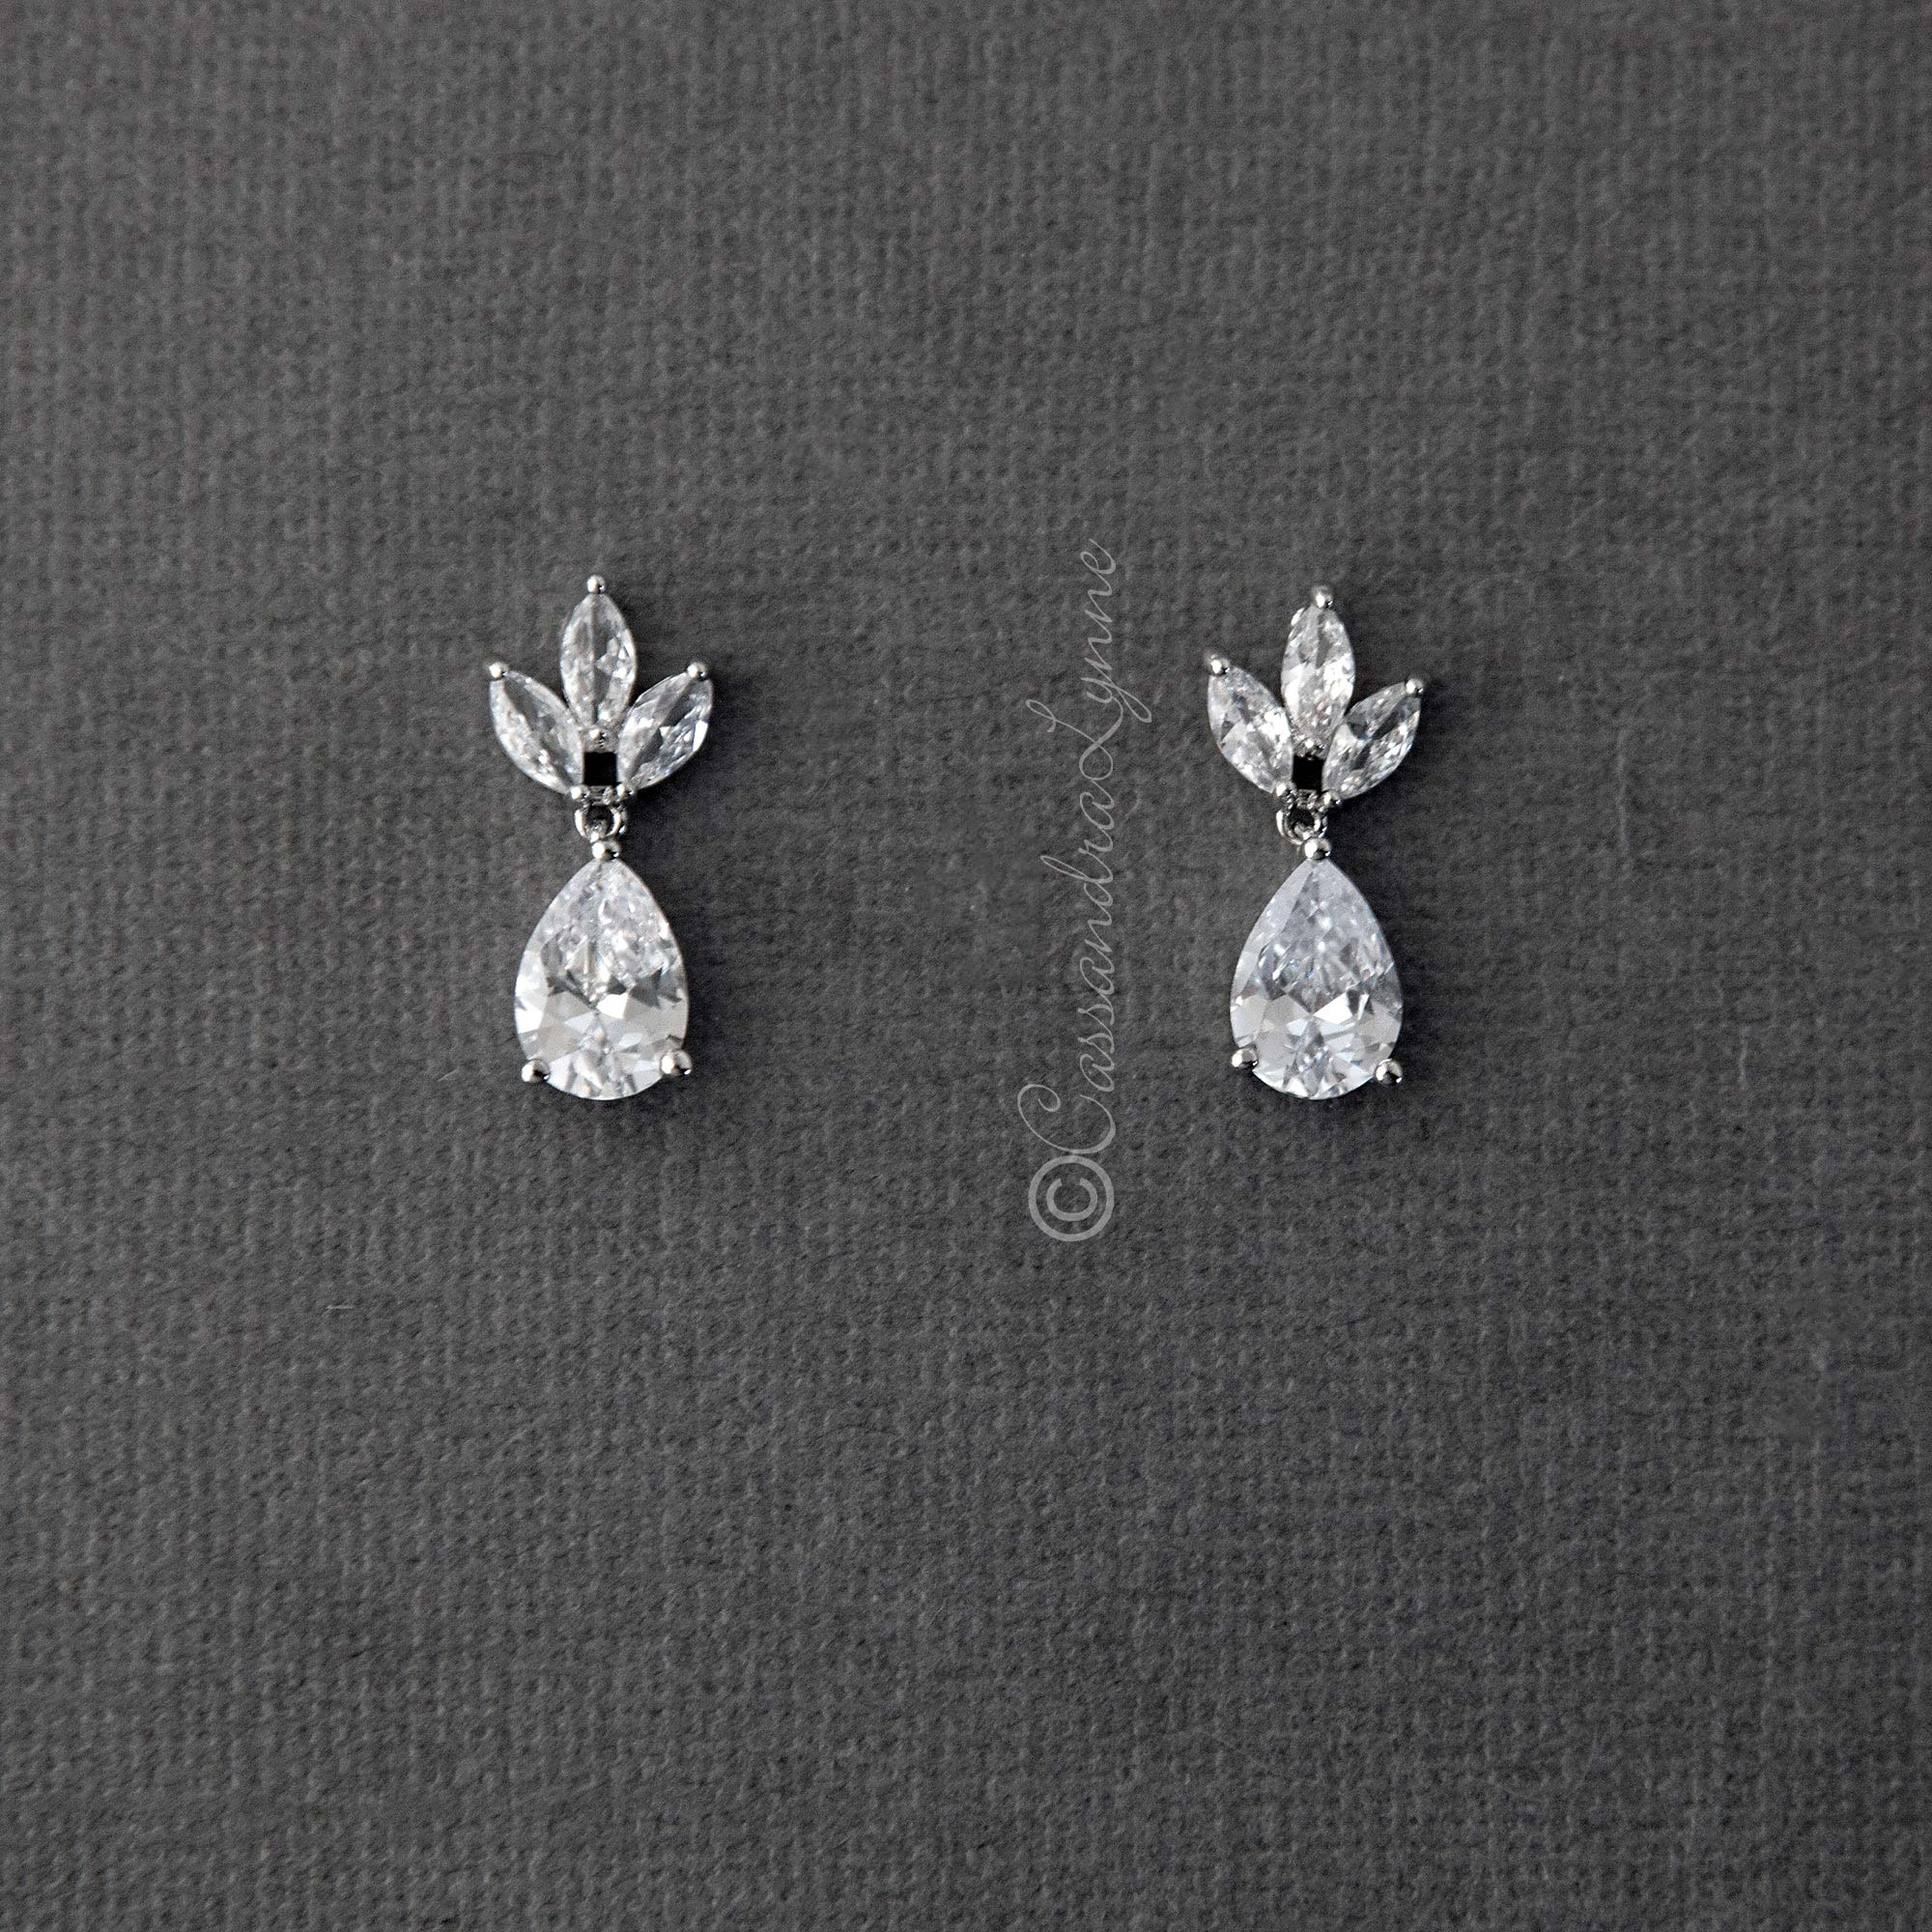 Wedding Earrings with CZ Pear Drop